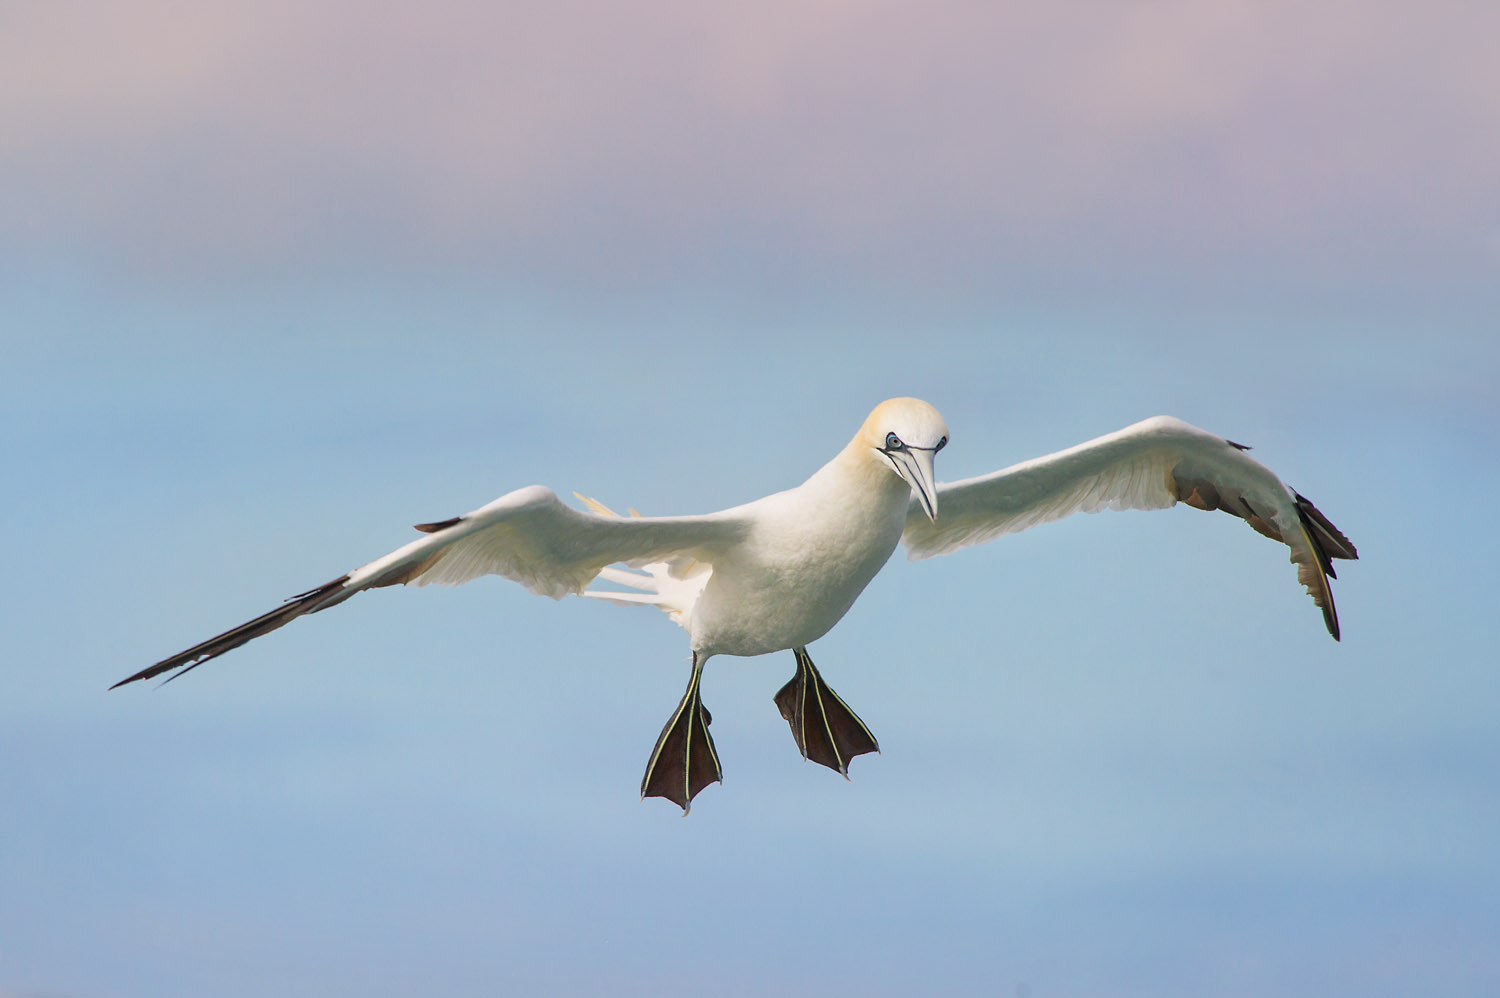 A beautiful Northern Gannet flares its wings before diving into the Atlantic Ocean.